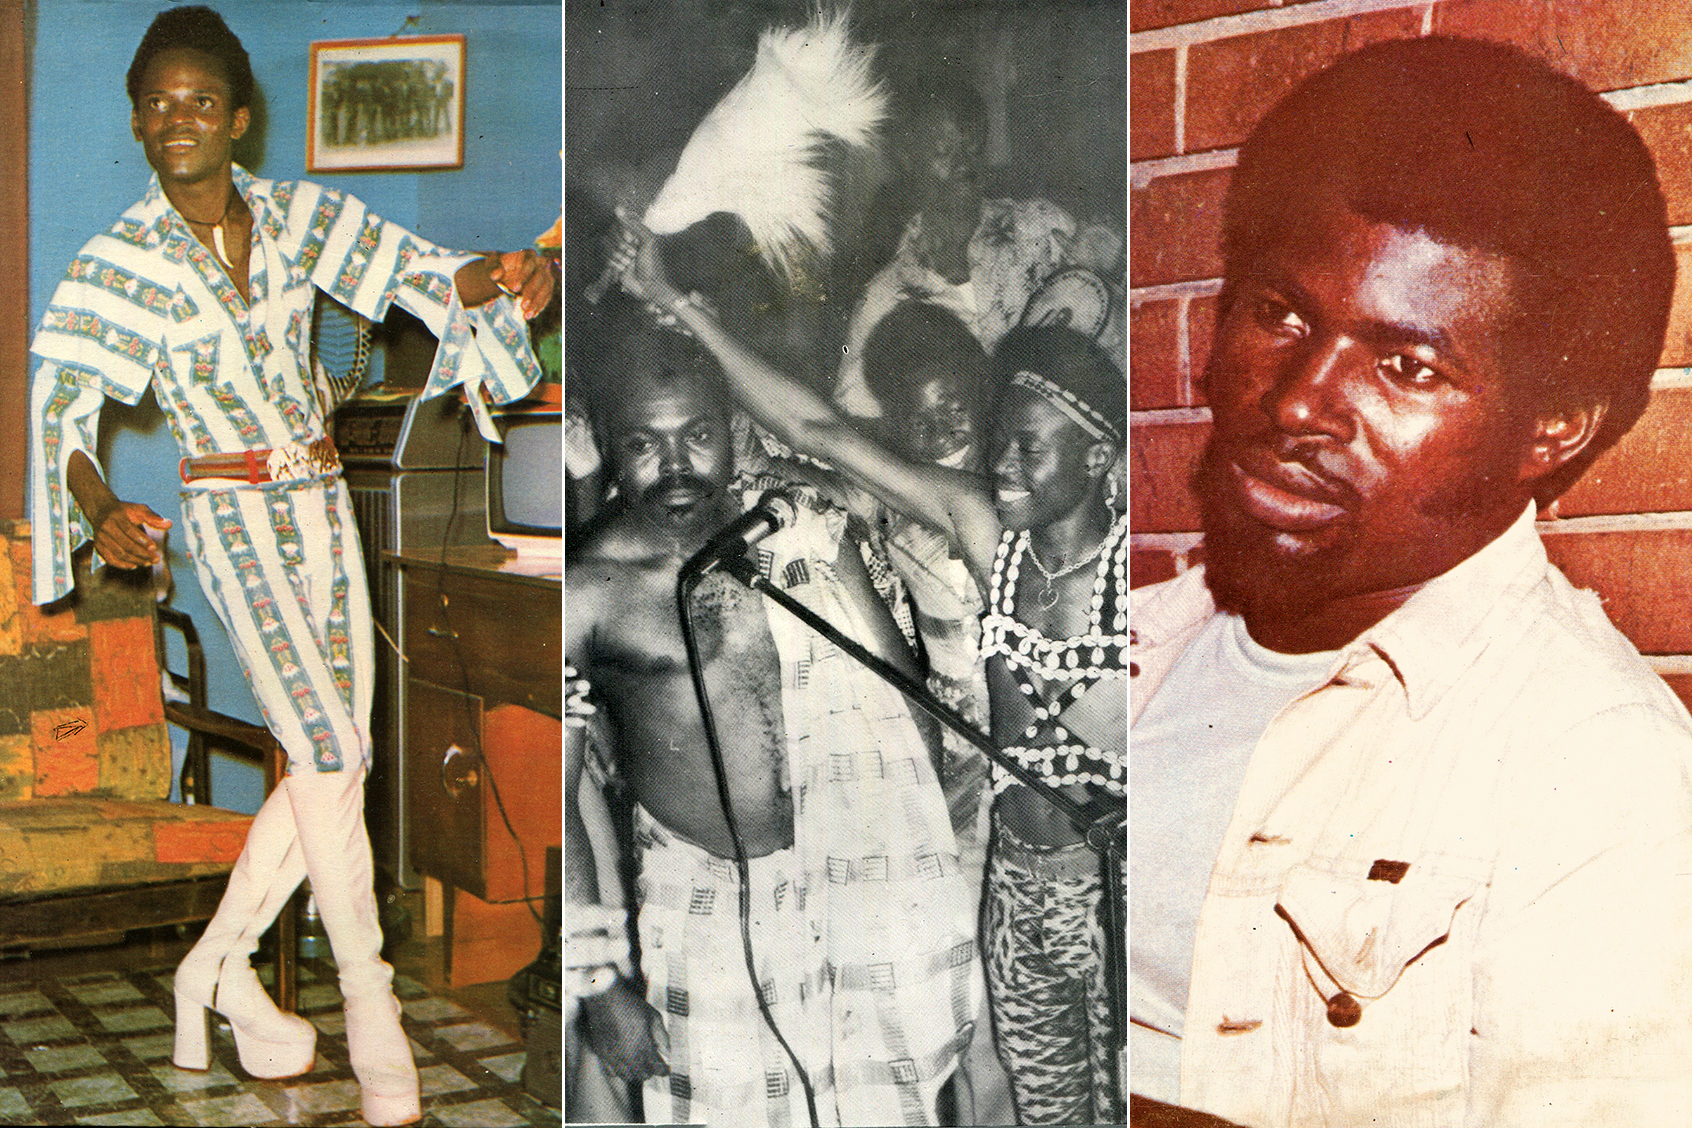 Review: 'Nigeria 70' is a Treasure Trove of Vintage African Grooves